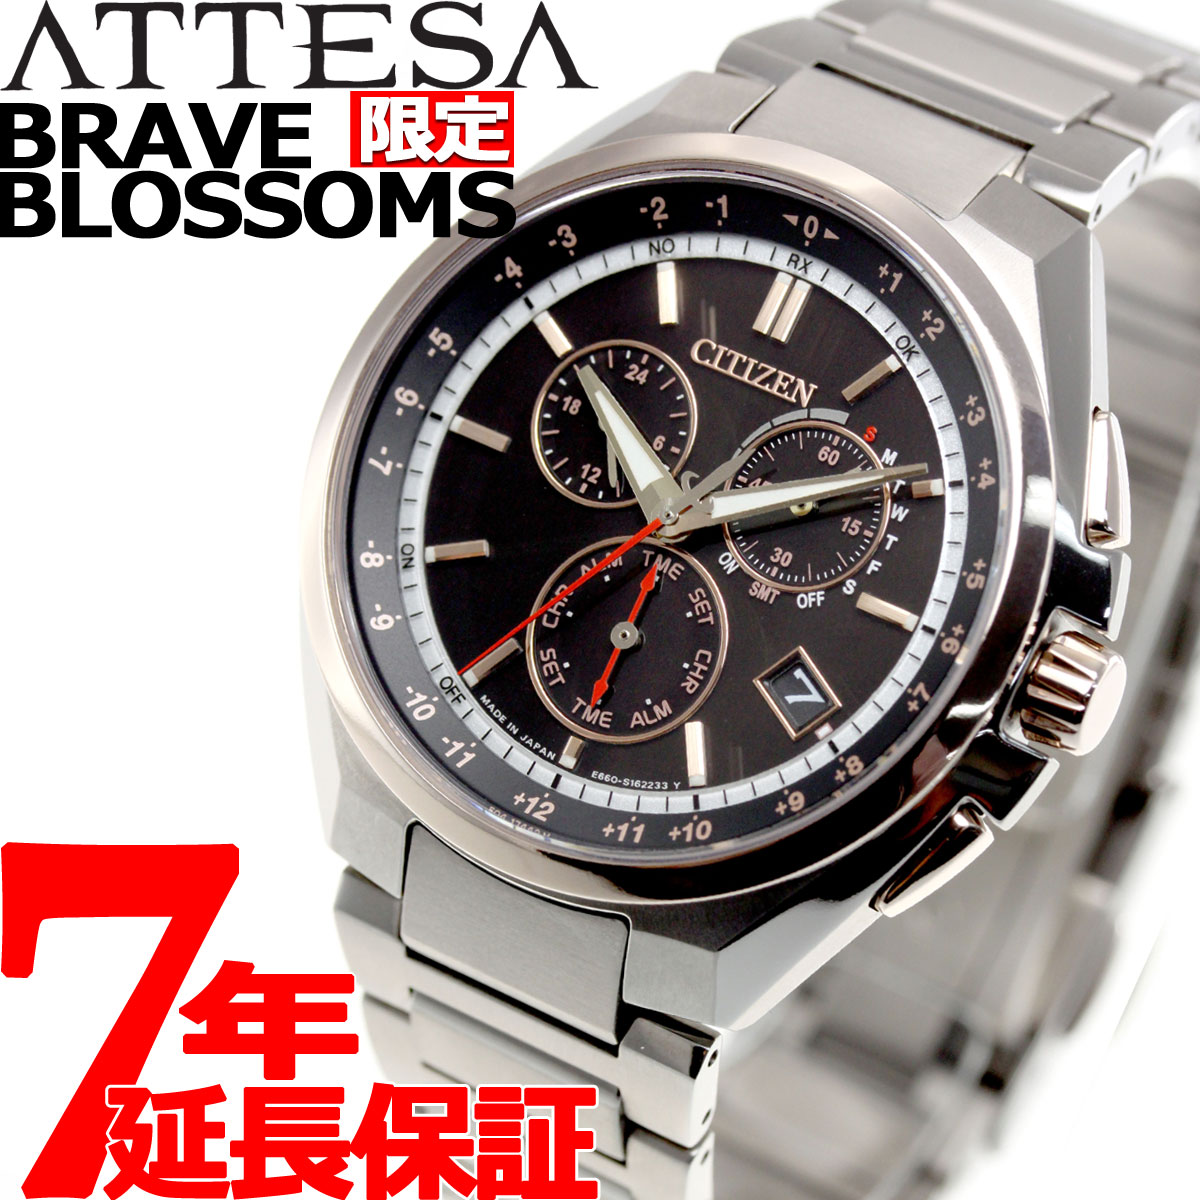 Only just! Point up to 38 times in the shop! Until 19th 9:59! シチズンアテッサ  Citizen ATTESA ecodrive solar radio time signal rugby